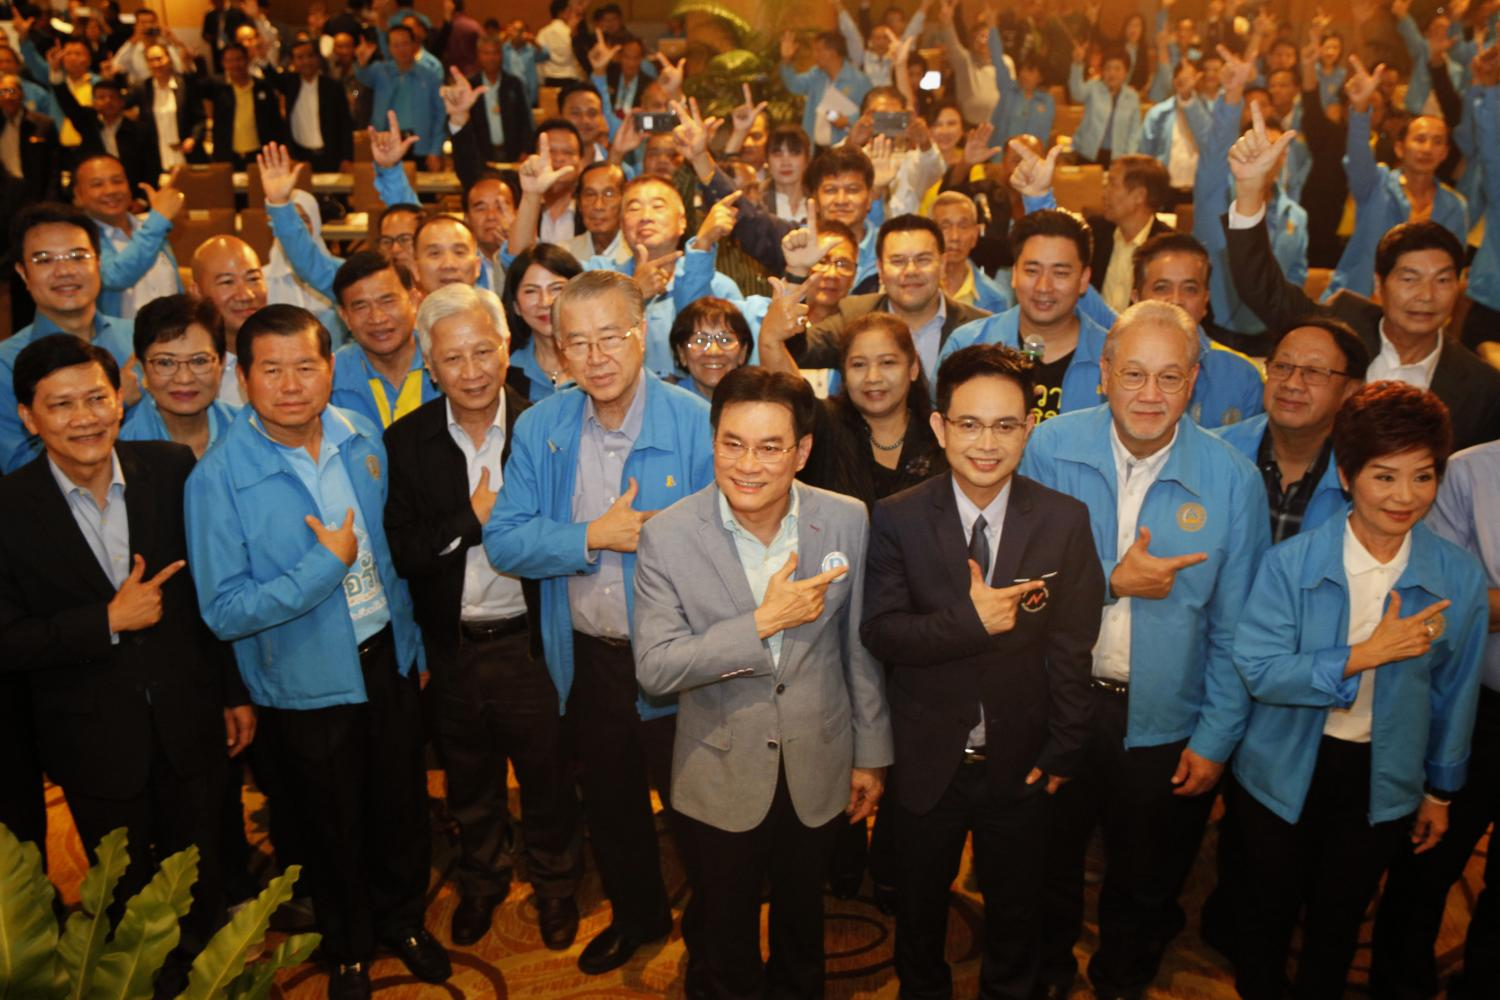 old is new again: Democrat leader and Commerce Minister Jurin Laksanawisit, middle, poses for a group photo with party members who gathered yesterday in Bangkok to brainstorm ideas to strengthen the 73-year-old party.